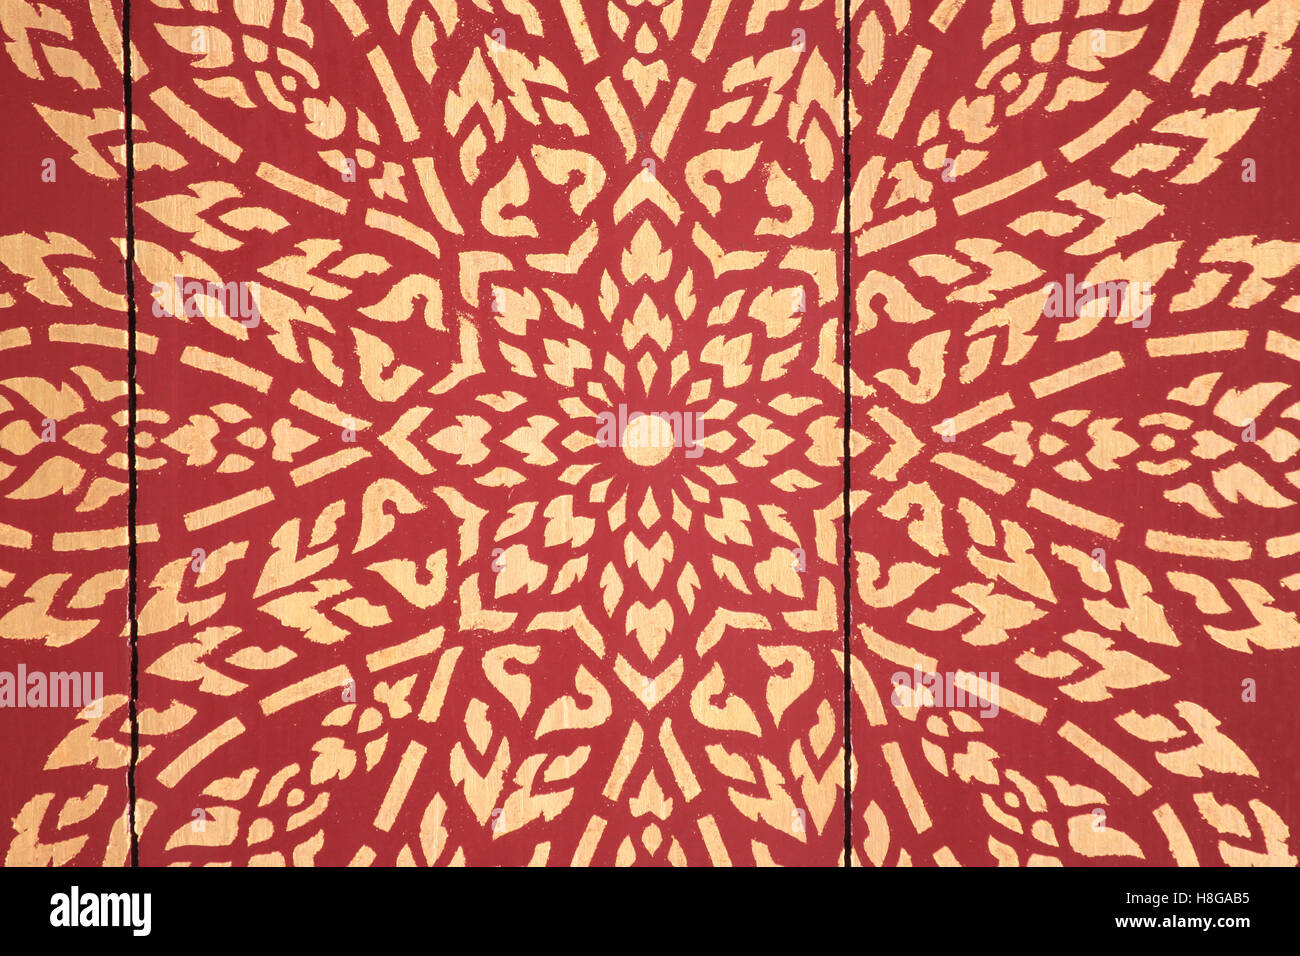 Art Flourishes In Thailand Thai Pattern Concept Of Arts And Crafts Stock Photo Alamy